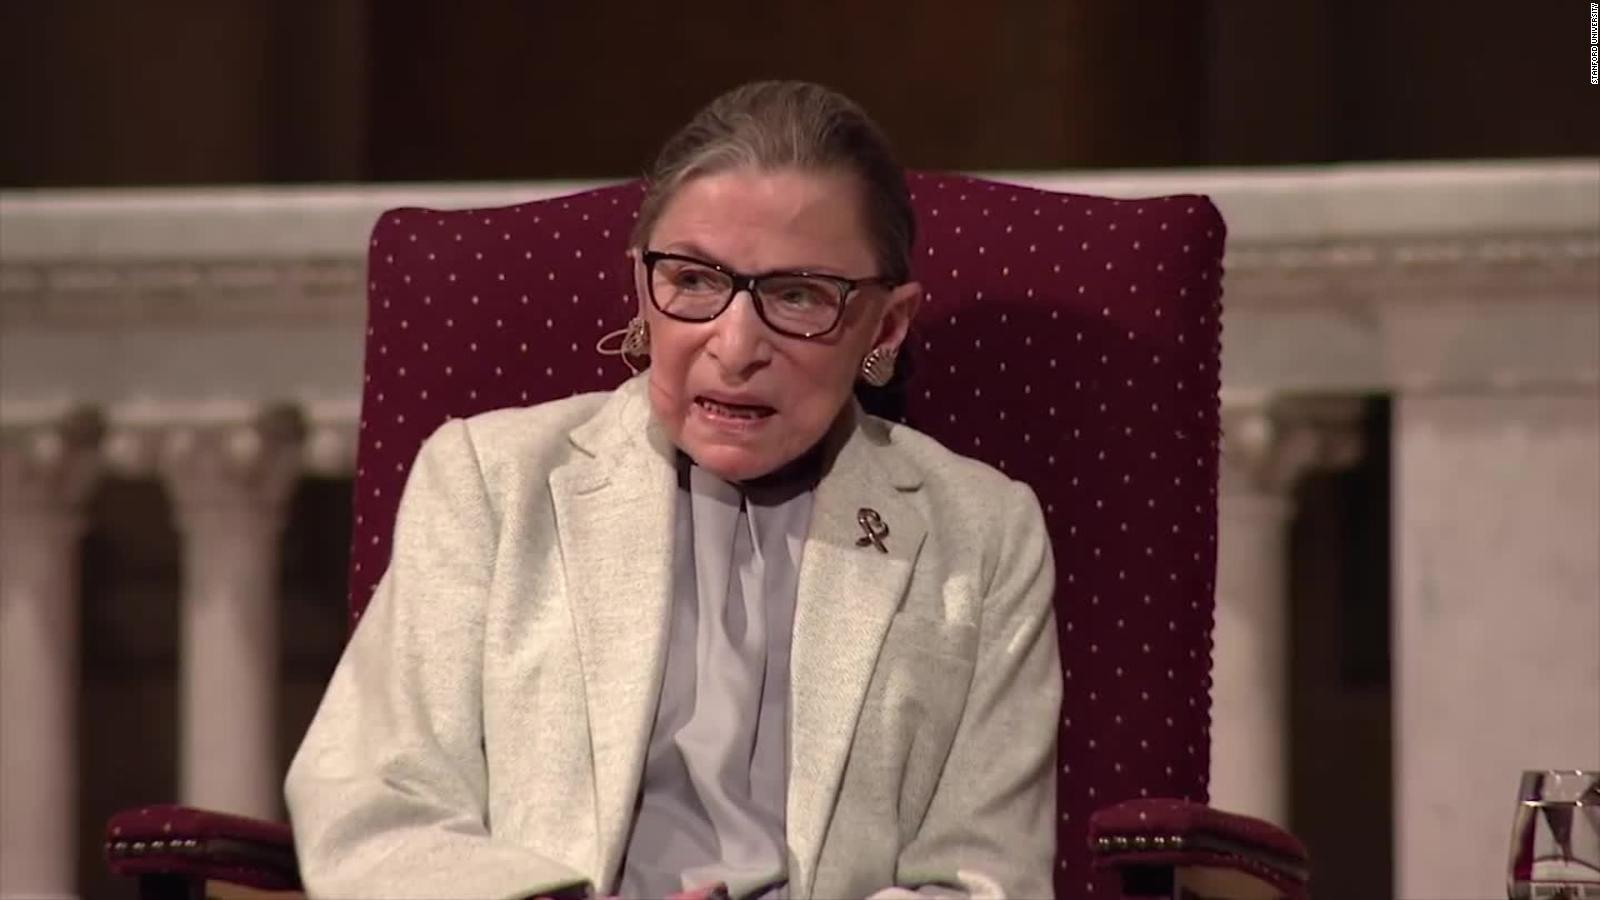 RUTH-JUSTICE GINSBURG IN HER OWN WORDS